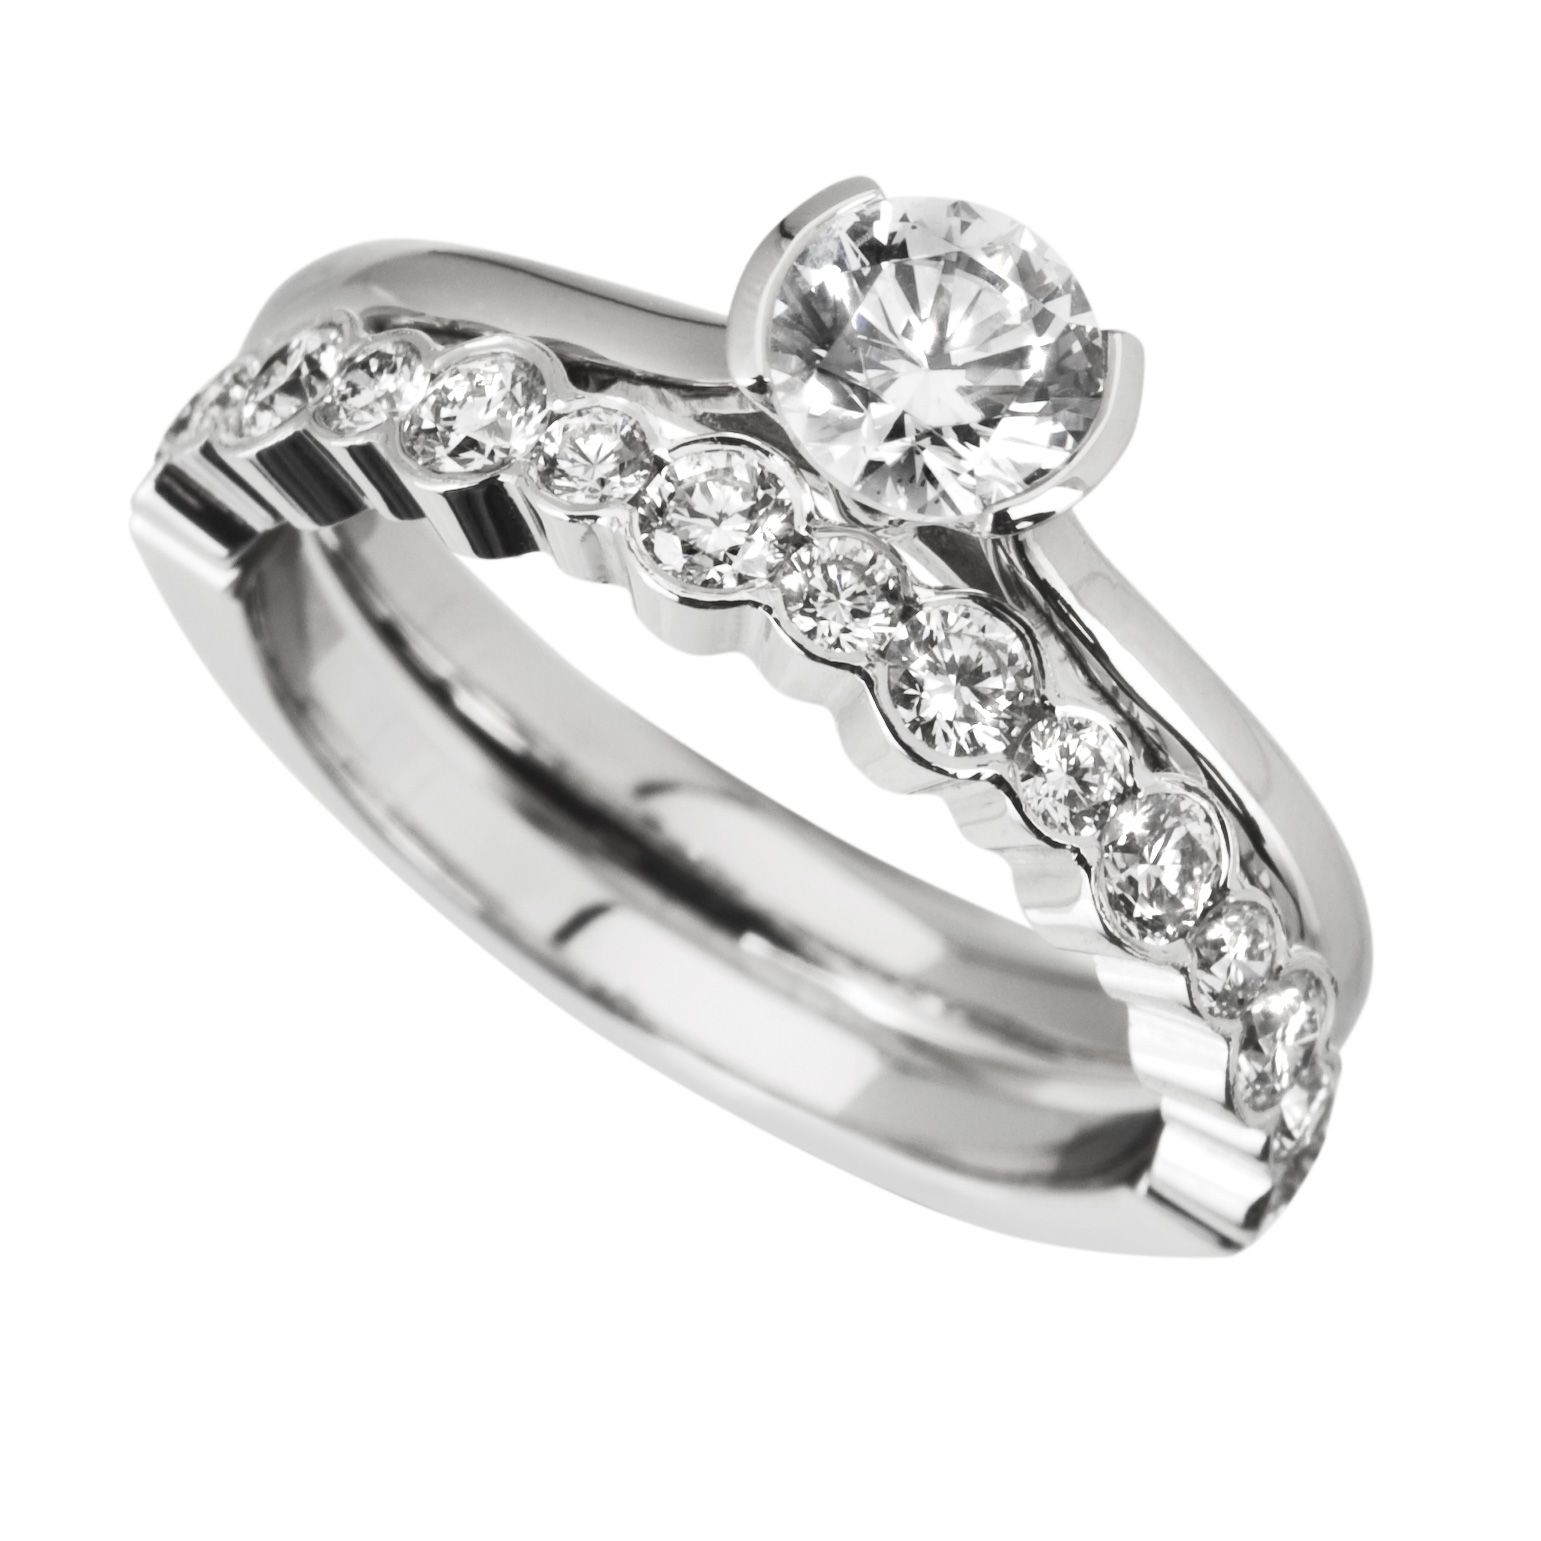 images of wedding rings sets rub over engagement ring with matching diamond - Diamond Wedding Ring Sets